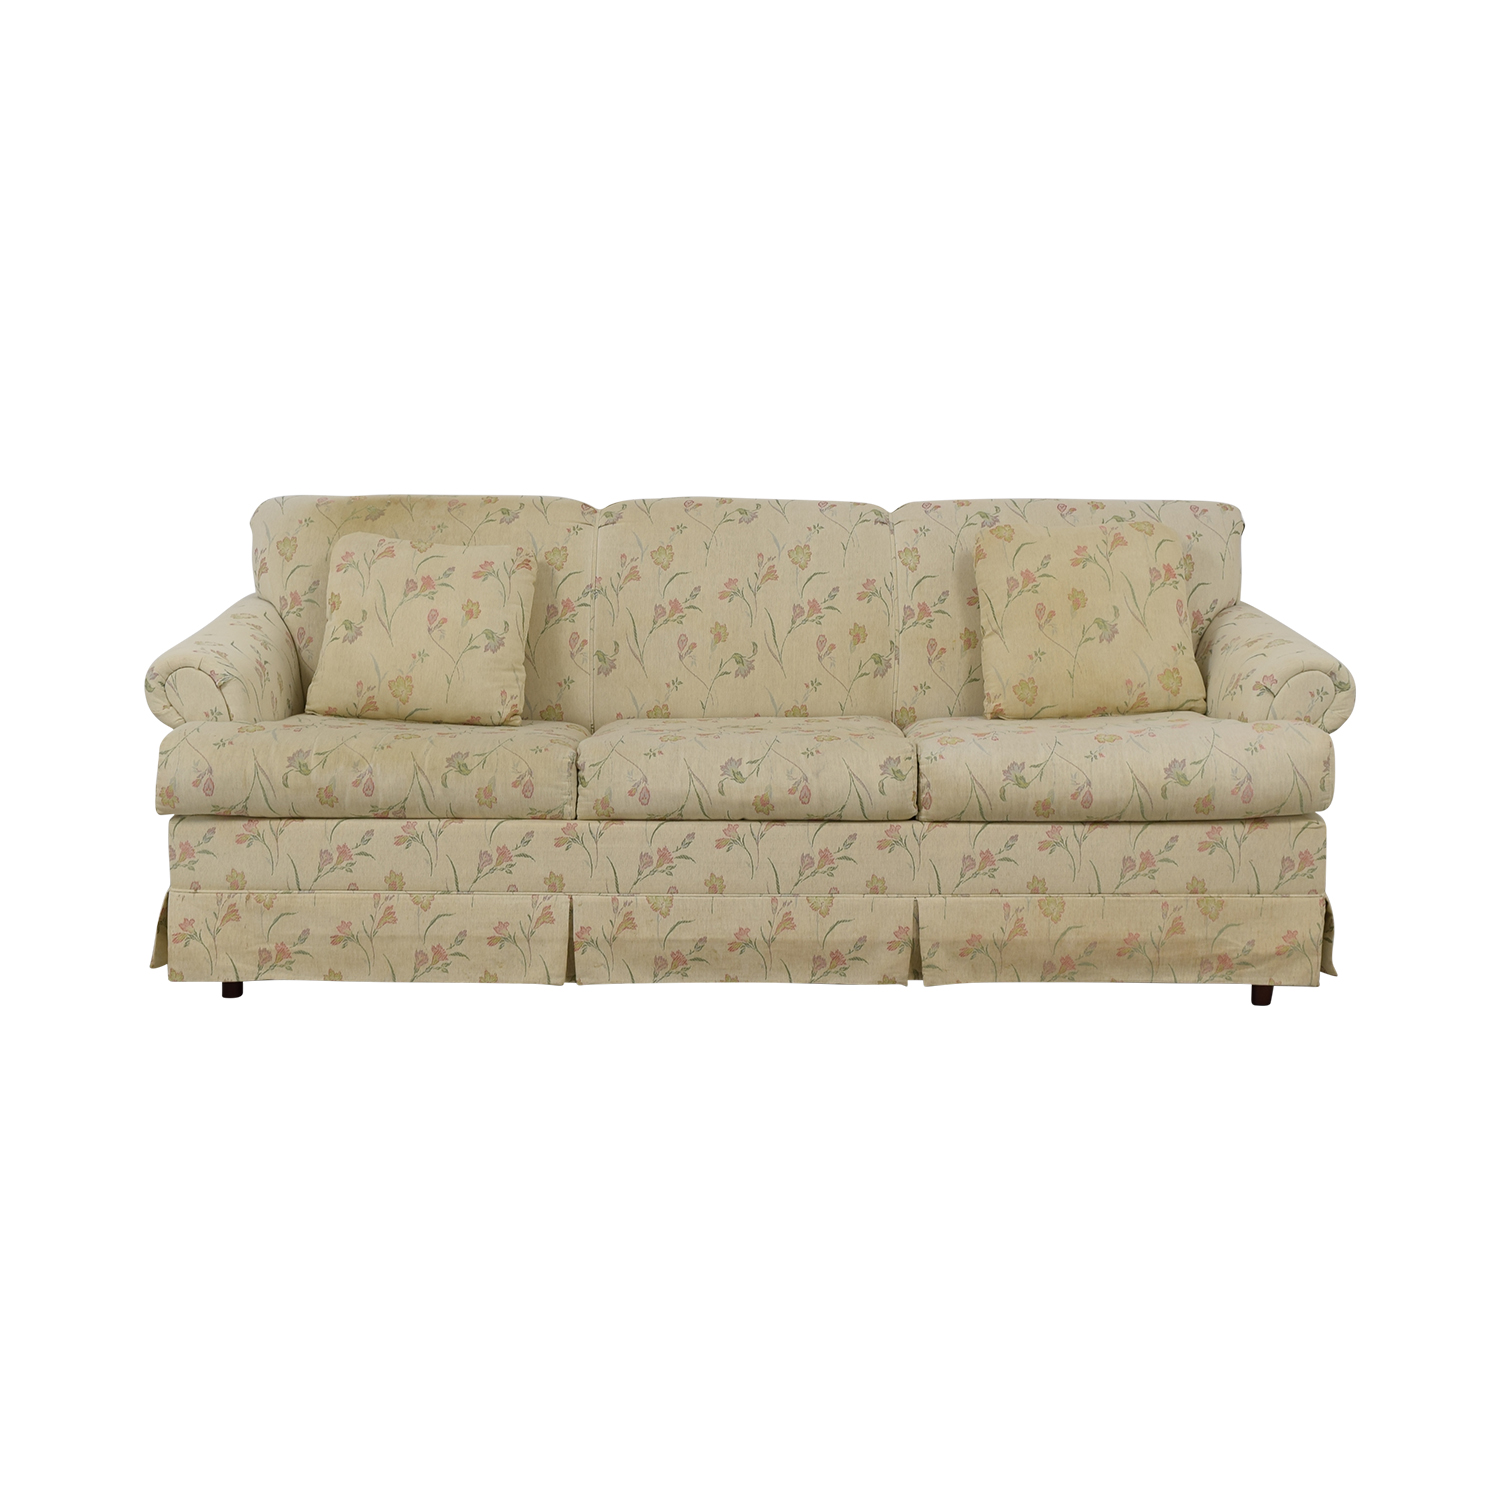 buy Stearns & Foster Queen Convertible Fashion Sofa Stearns & Foster